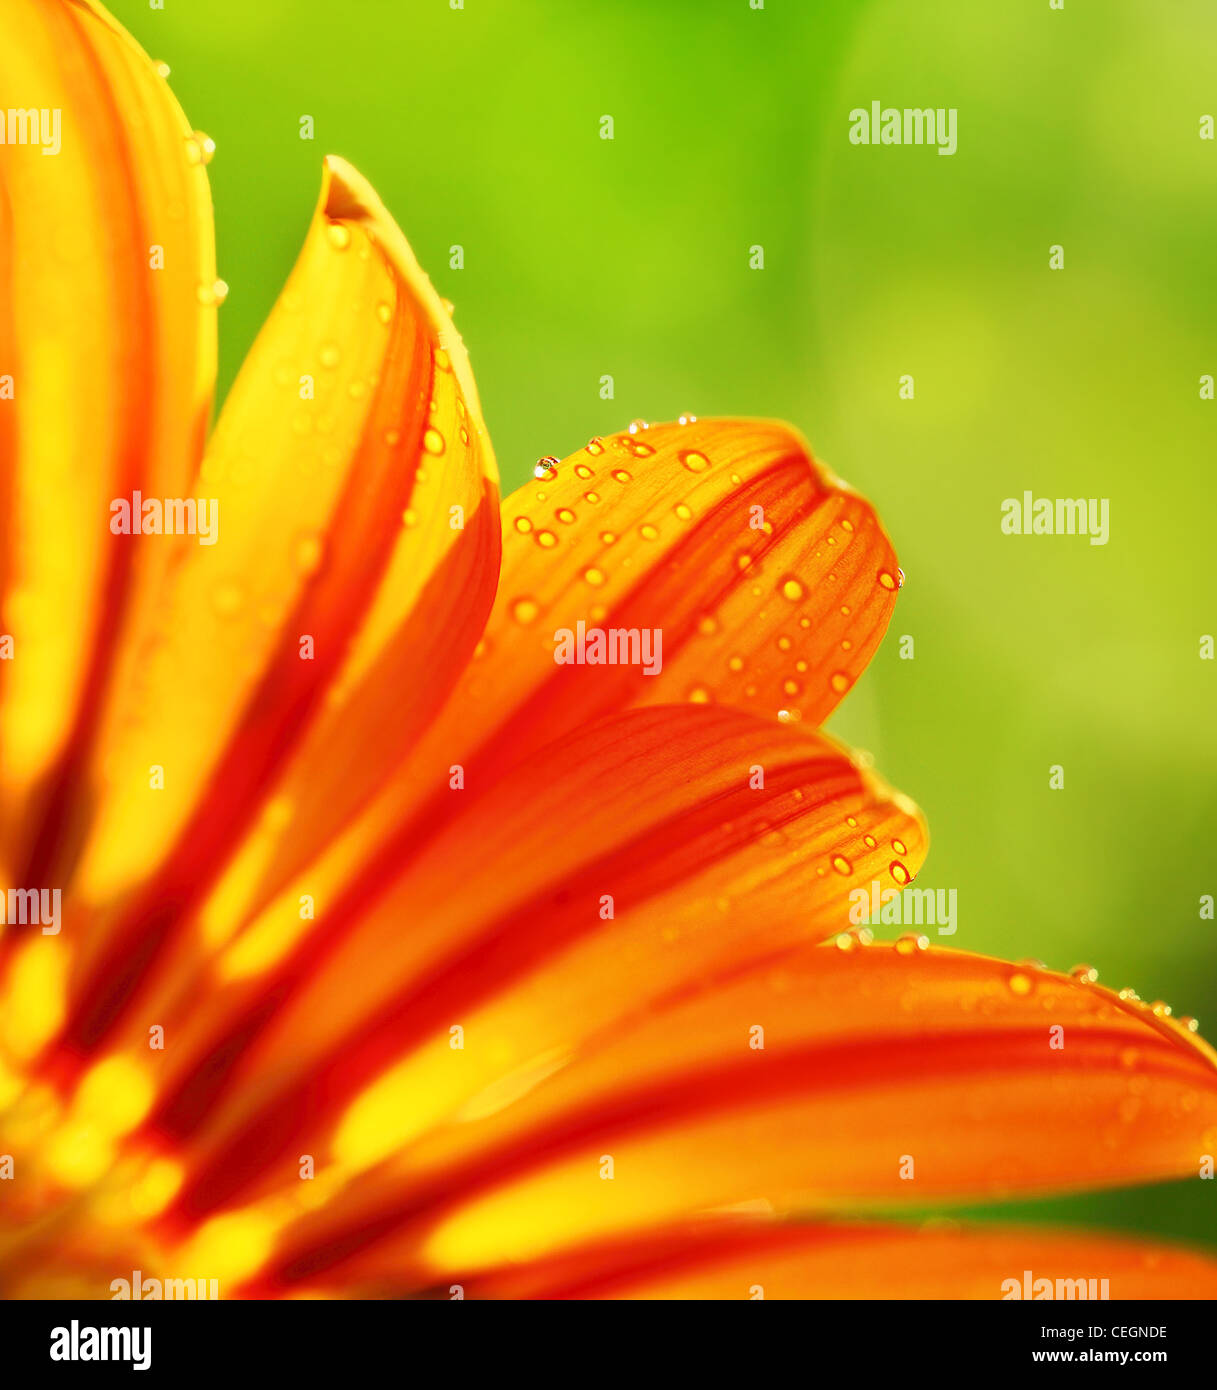 Abstract beautiful flower, colorful floral background , wet yellow petals border, daisy plant with bokeh ,nature - Stock Image